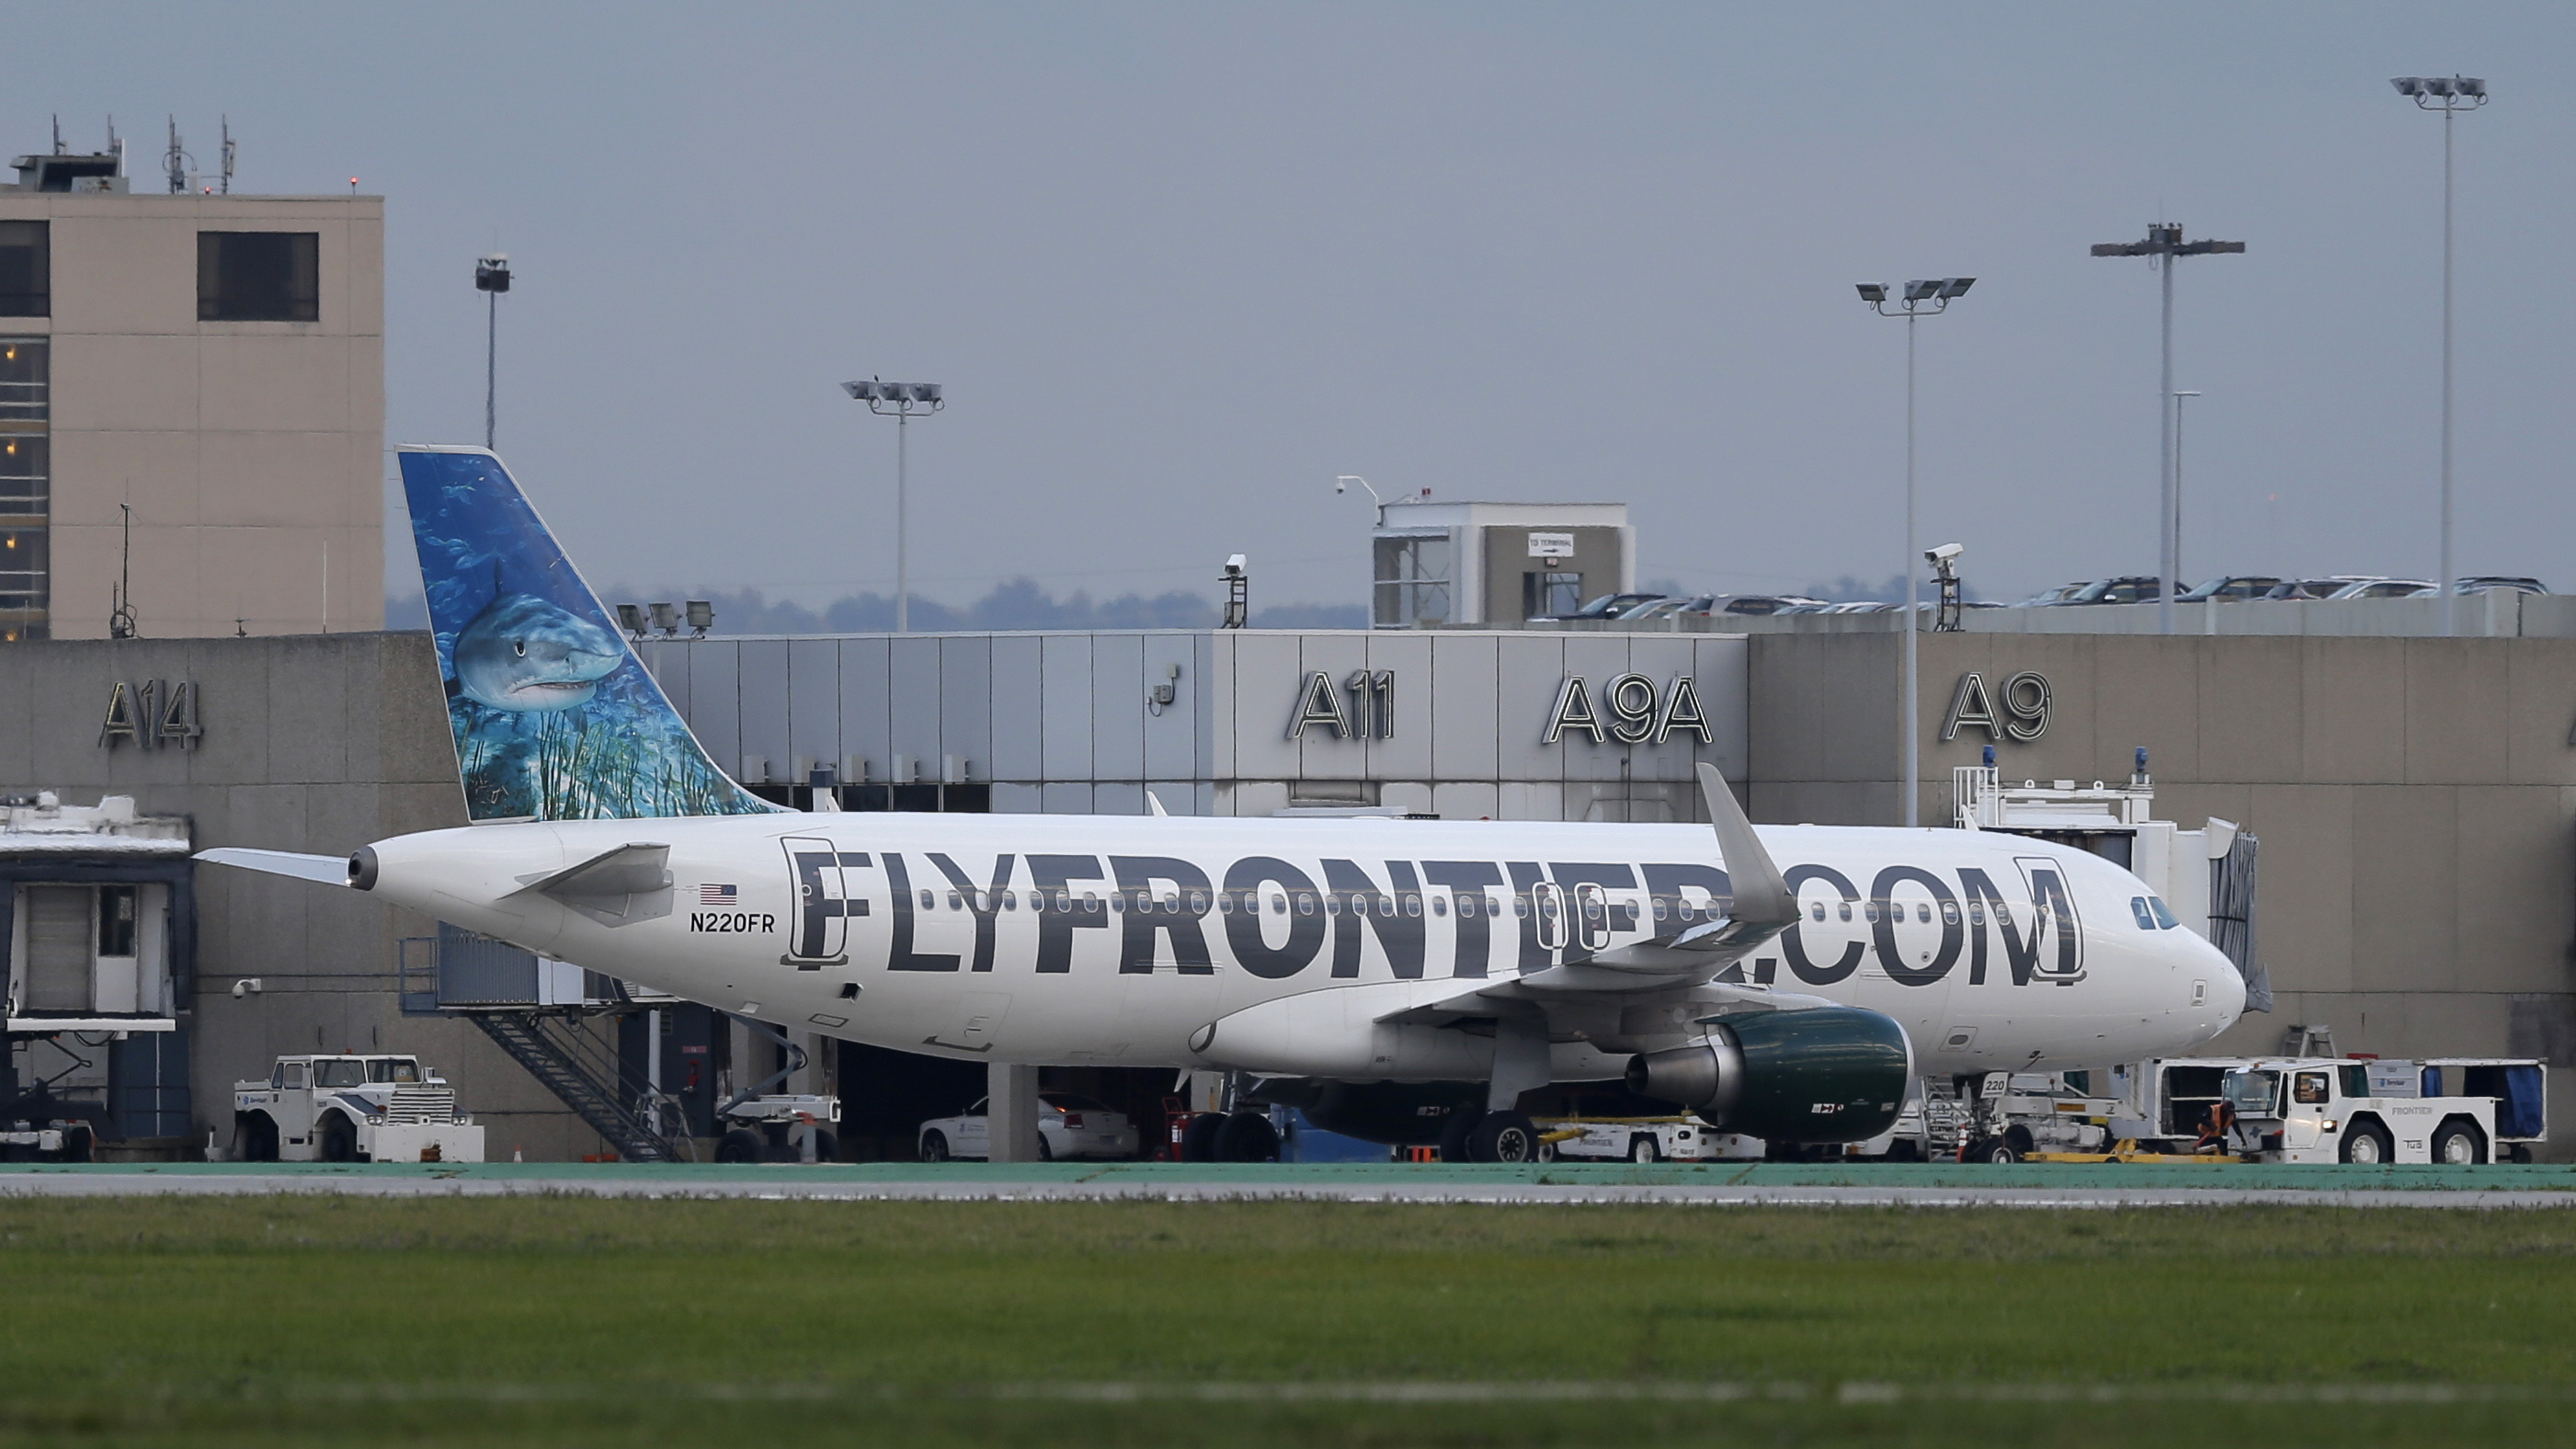 Photo: Frontier plane that flew Ebola patient